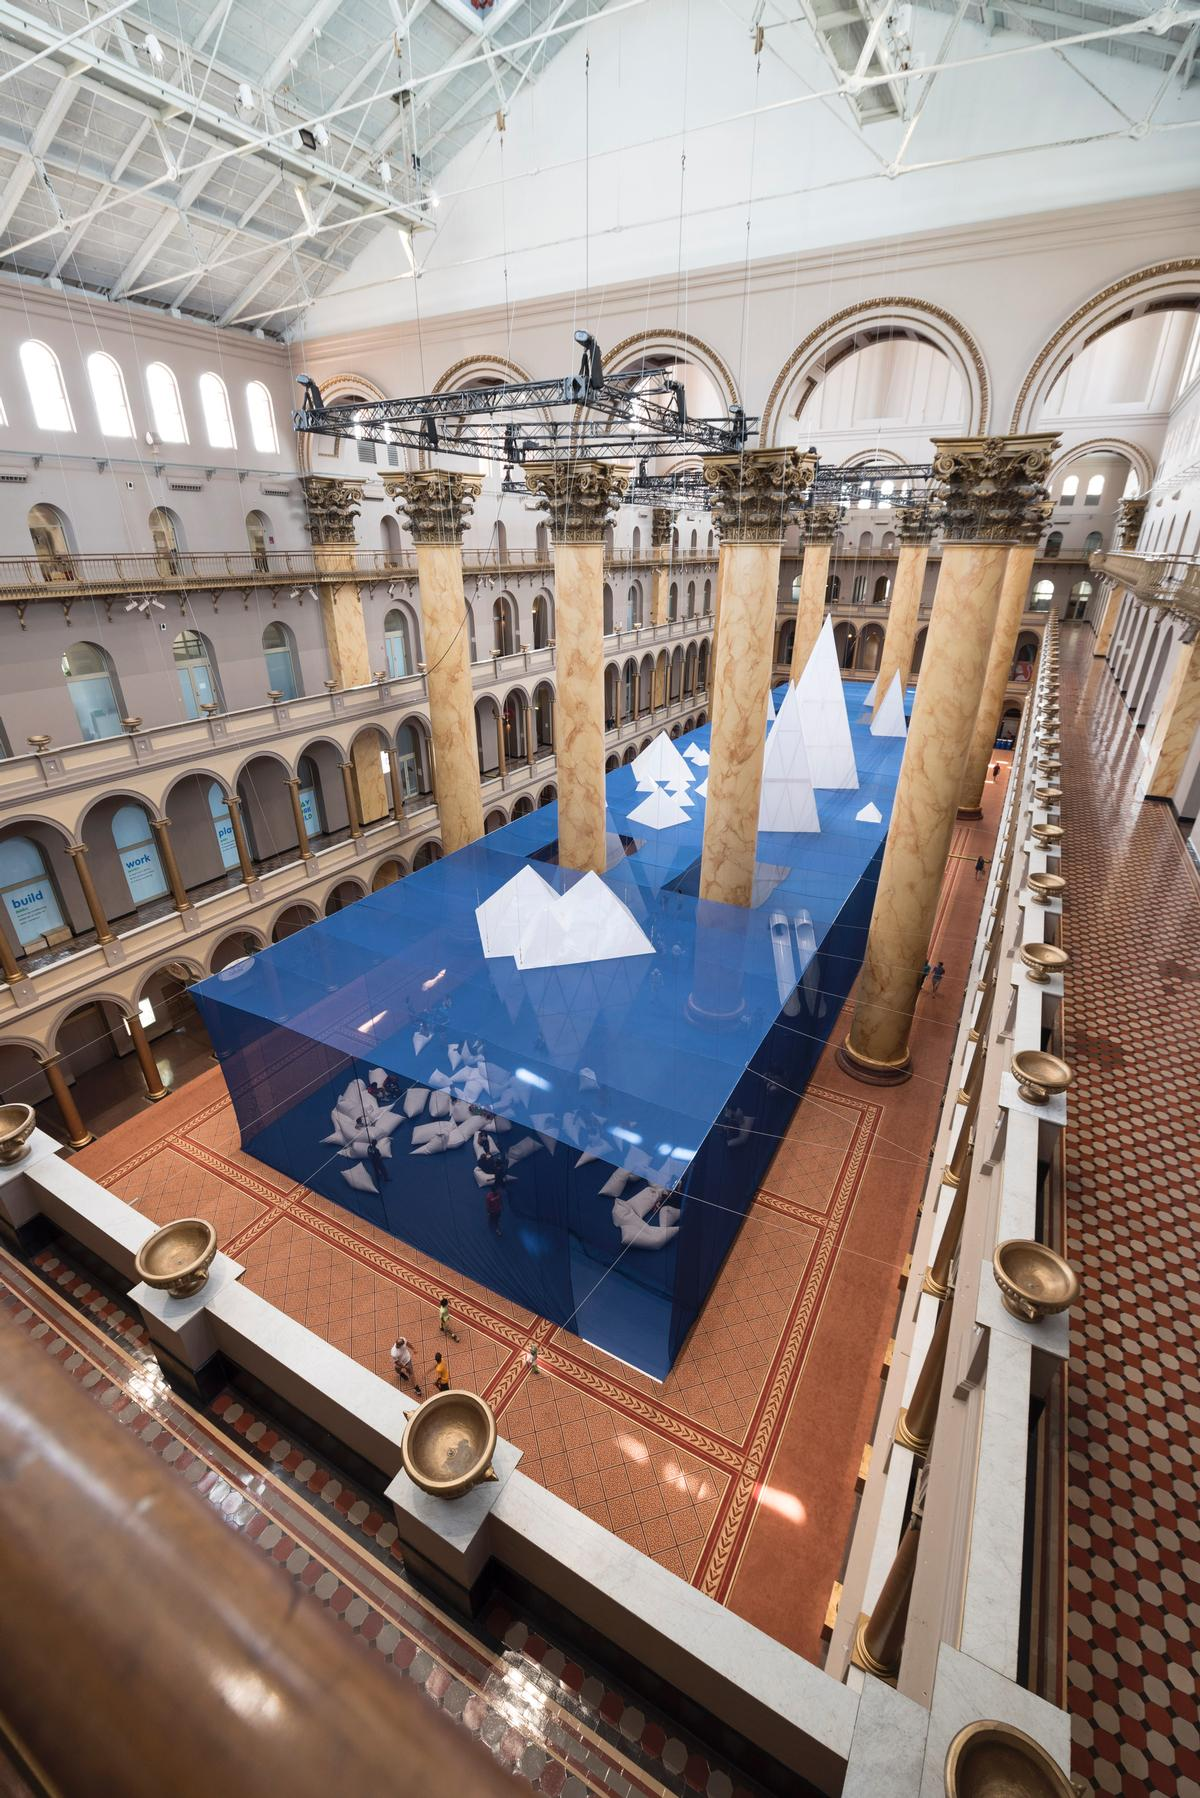 ICEBERGS occupies an area of 12,540sq ft (1,100sq m) in the museum's Great Hall / Timothy Schenck